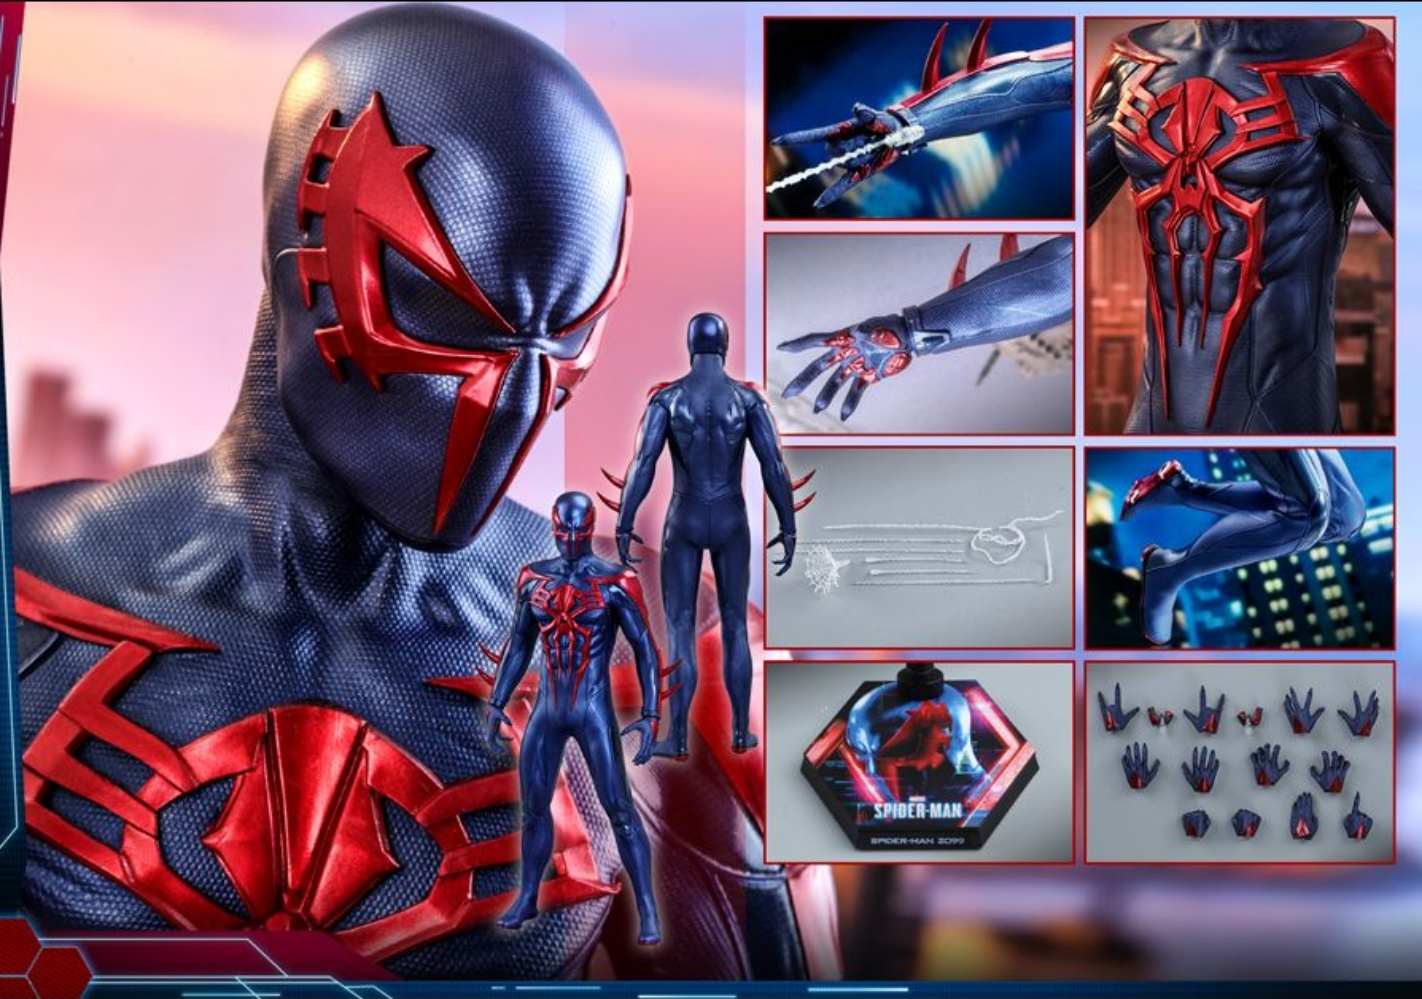 Hot Toys VGM42 Spider-Man 2099 Suit 1/6 Scale Figure